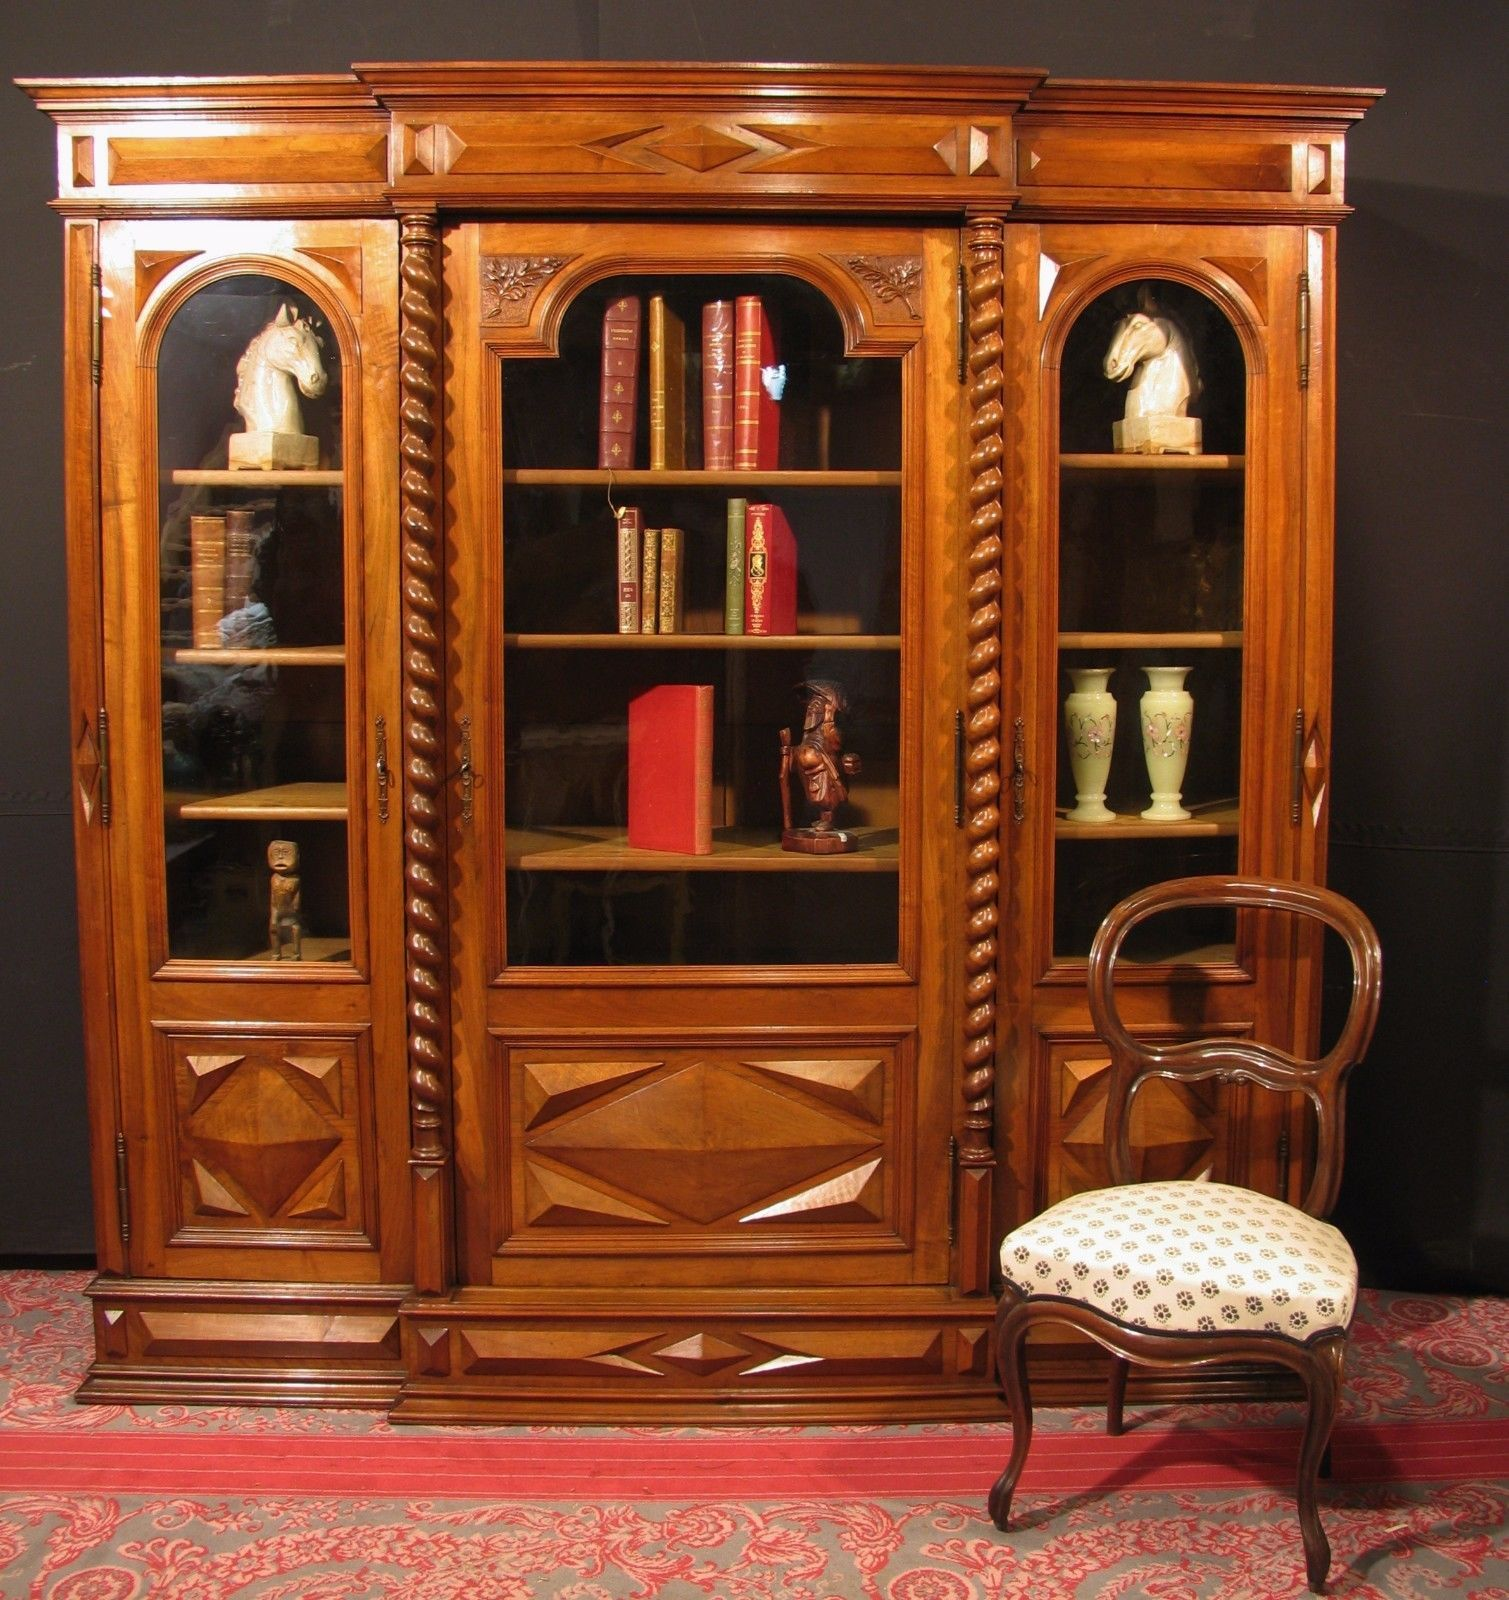 ancienne biblioth que louis xiii noyer vitrine meuble cabinet curiosit chasse meubles de. Black Bedroom Furniture Sets. Home Design Ideas